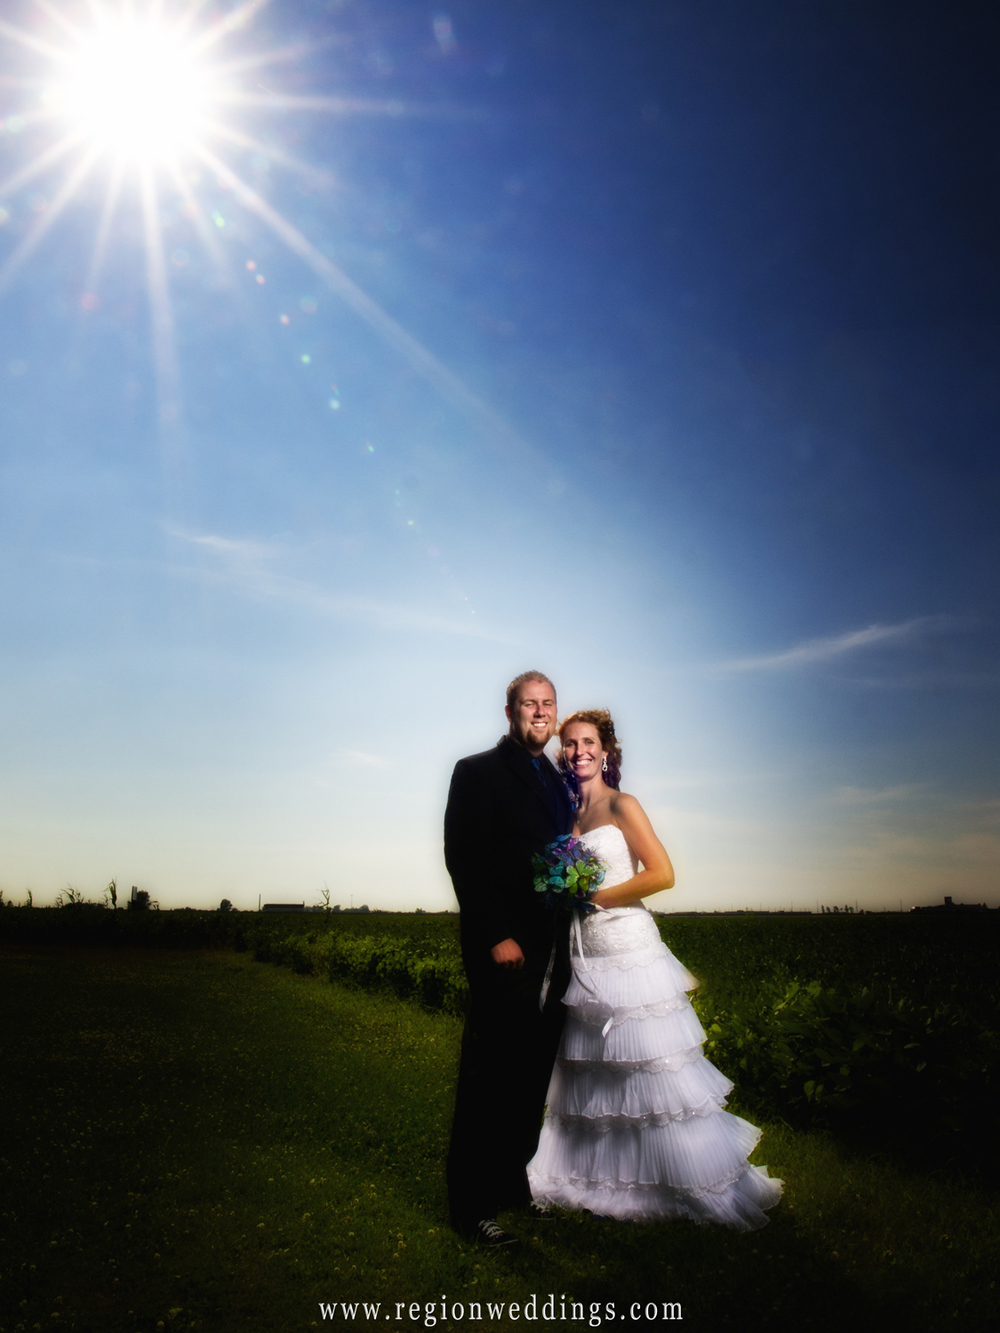 The bride and groom underneath a summer sunburst at an Indiana farm on their wedding day.